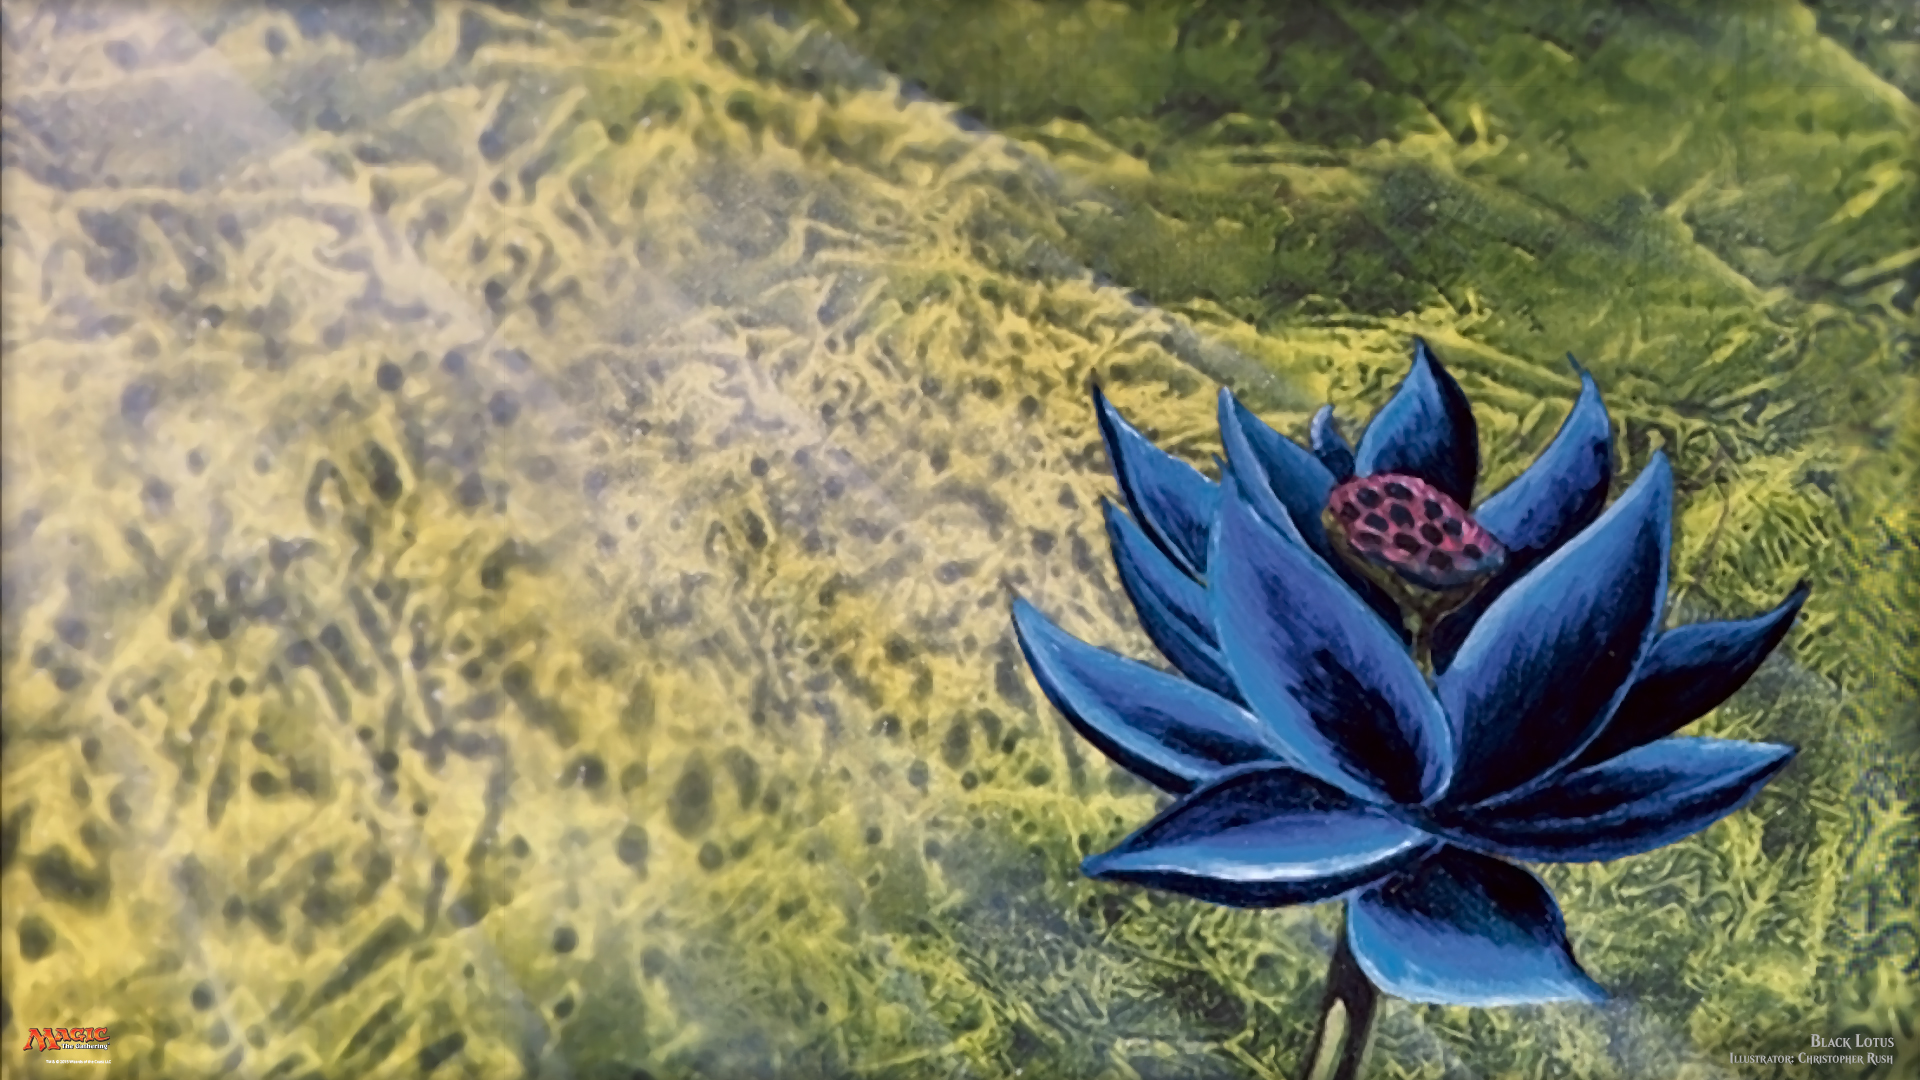 Magic The Gathering Hd Wallpaper Background Image 1920x1080 Id 943273 Wallpaper Abyss